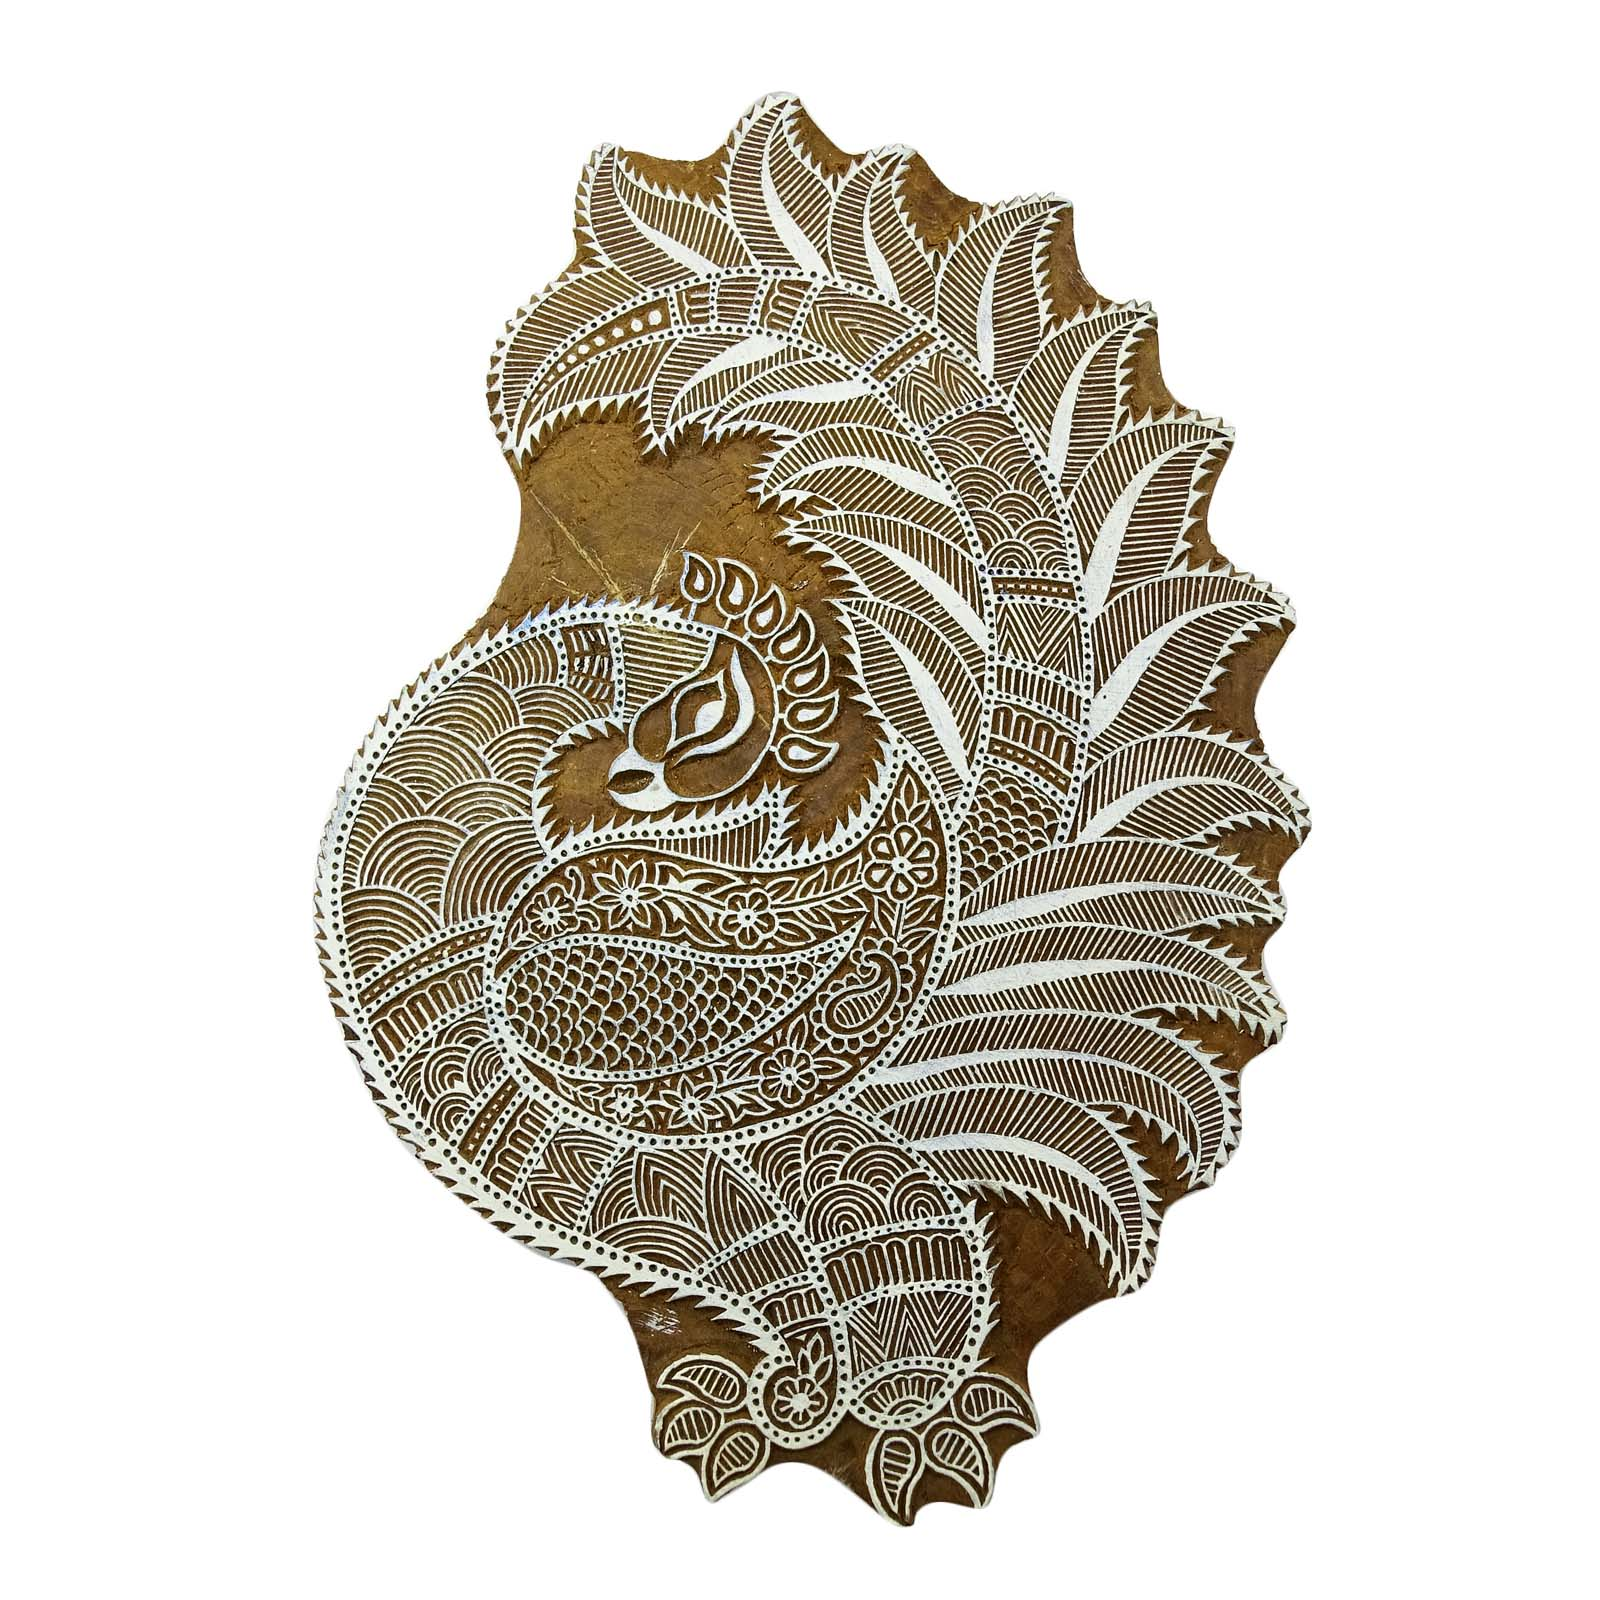 Indian Hand Carved Peacock Design Wooden Printing Block Textile Stamp 7 x 6